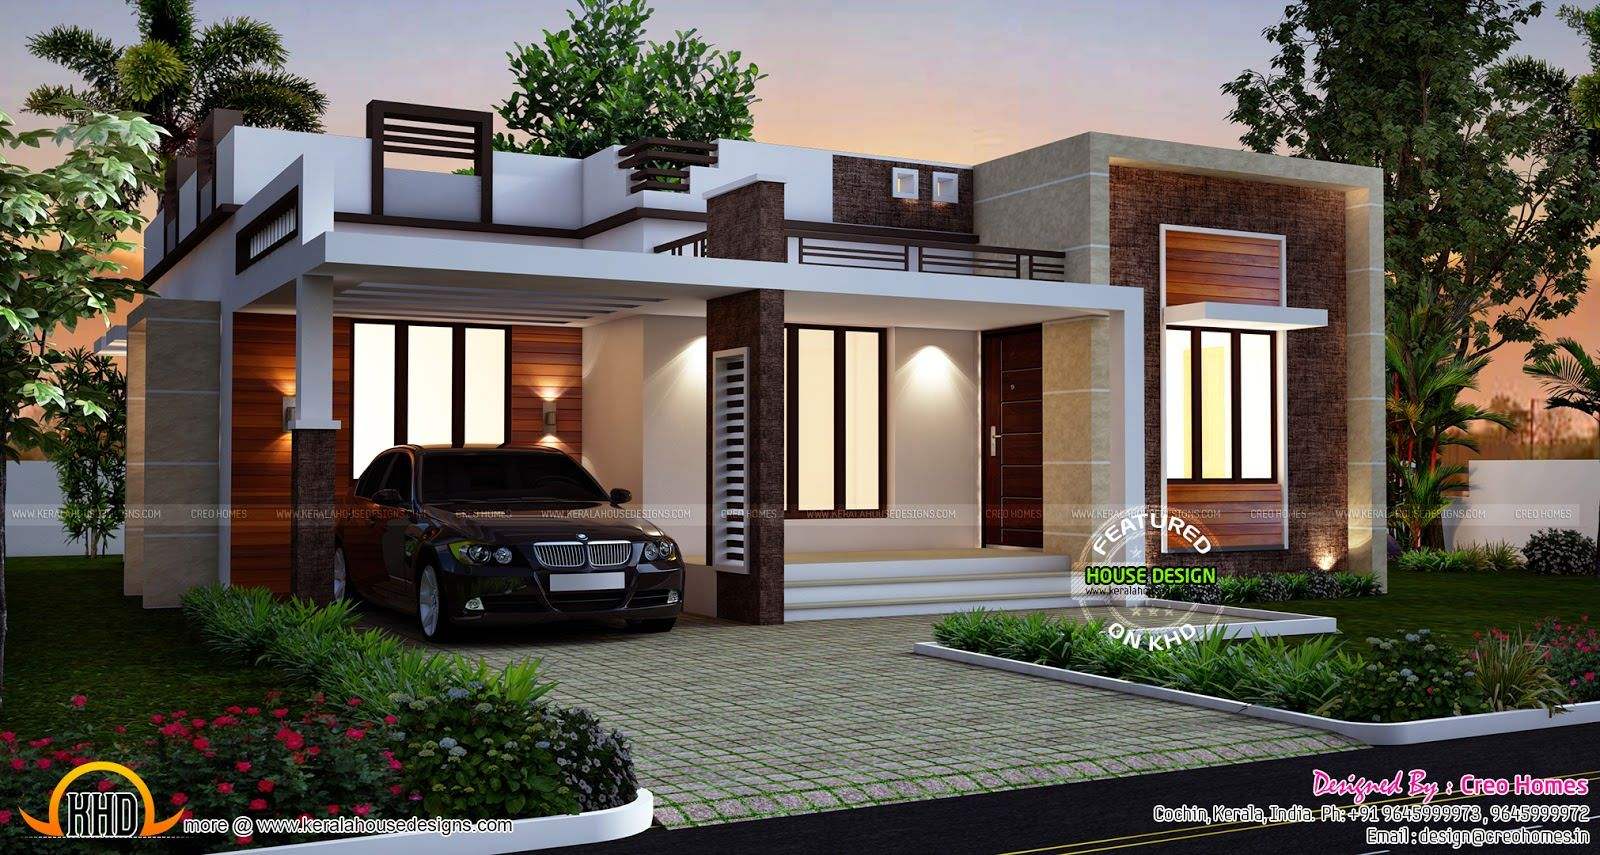 Designs homes design single story flat roof house plans House plan flat roof design